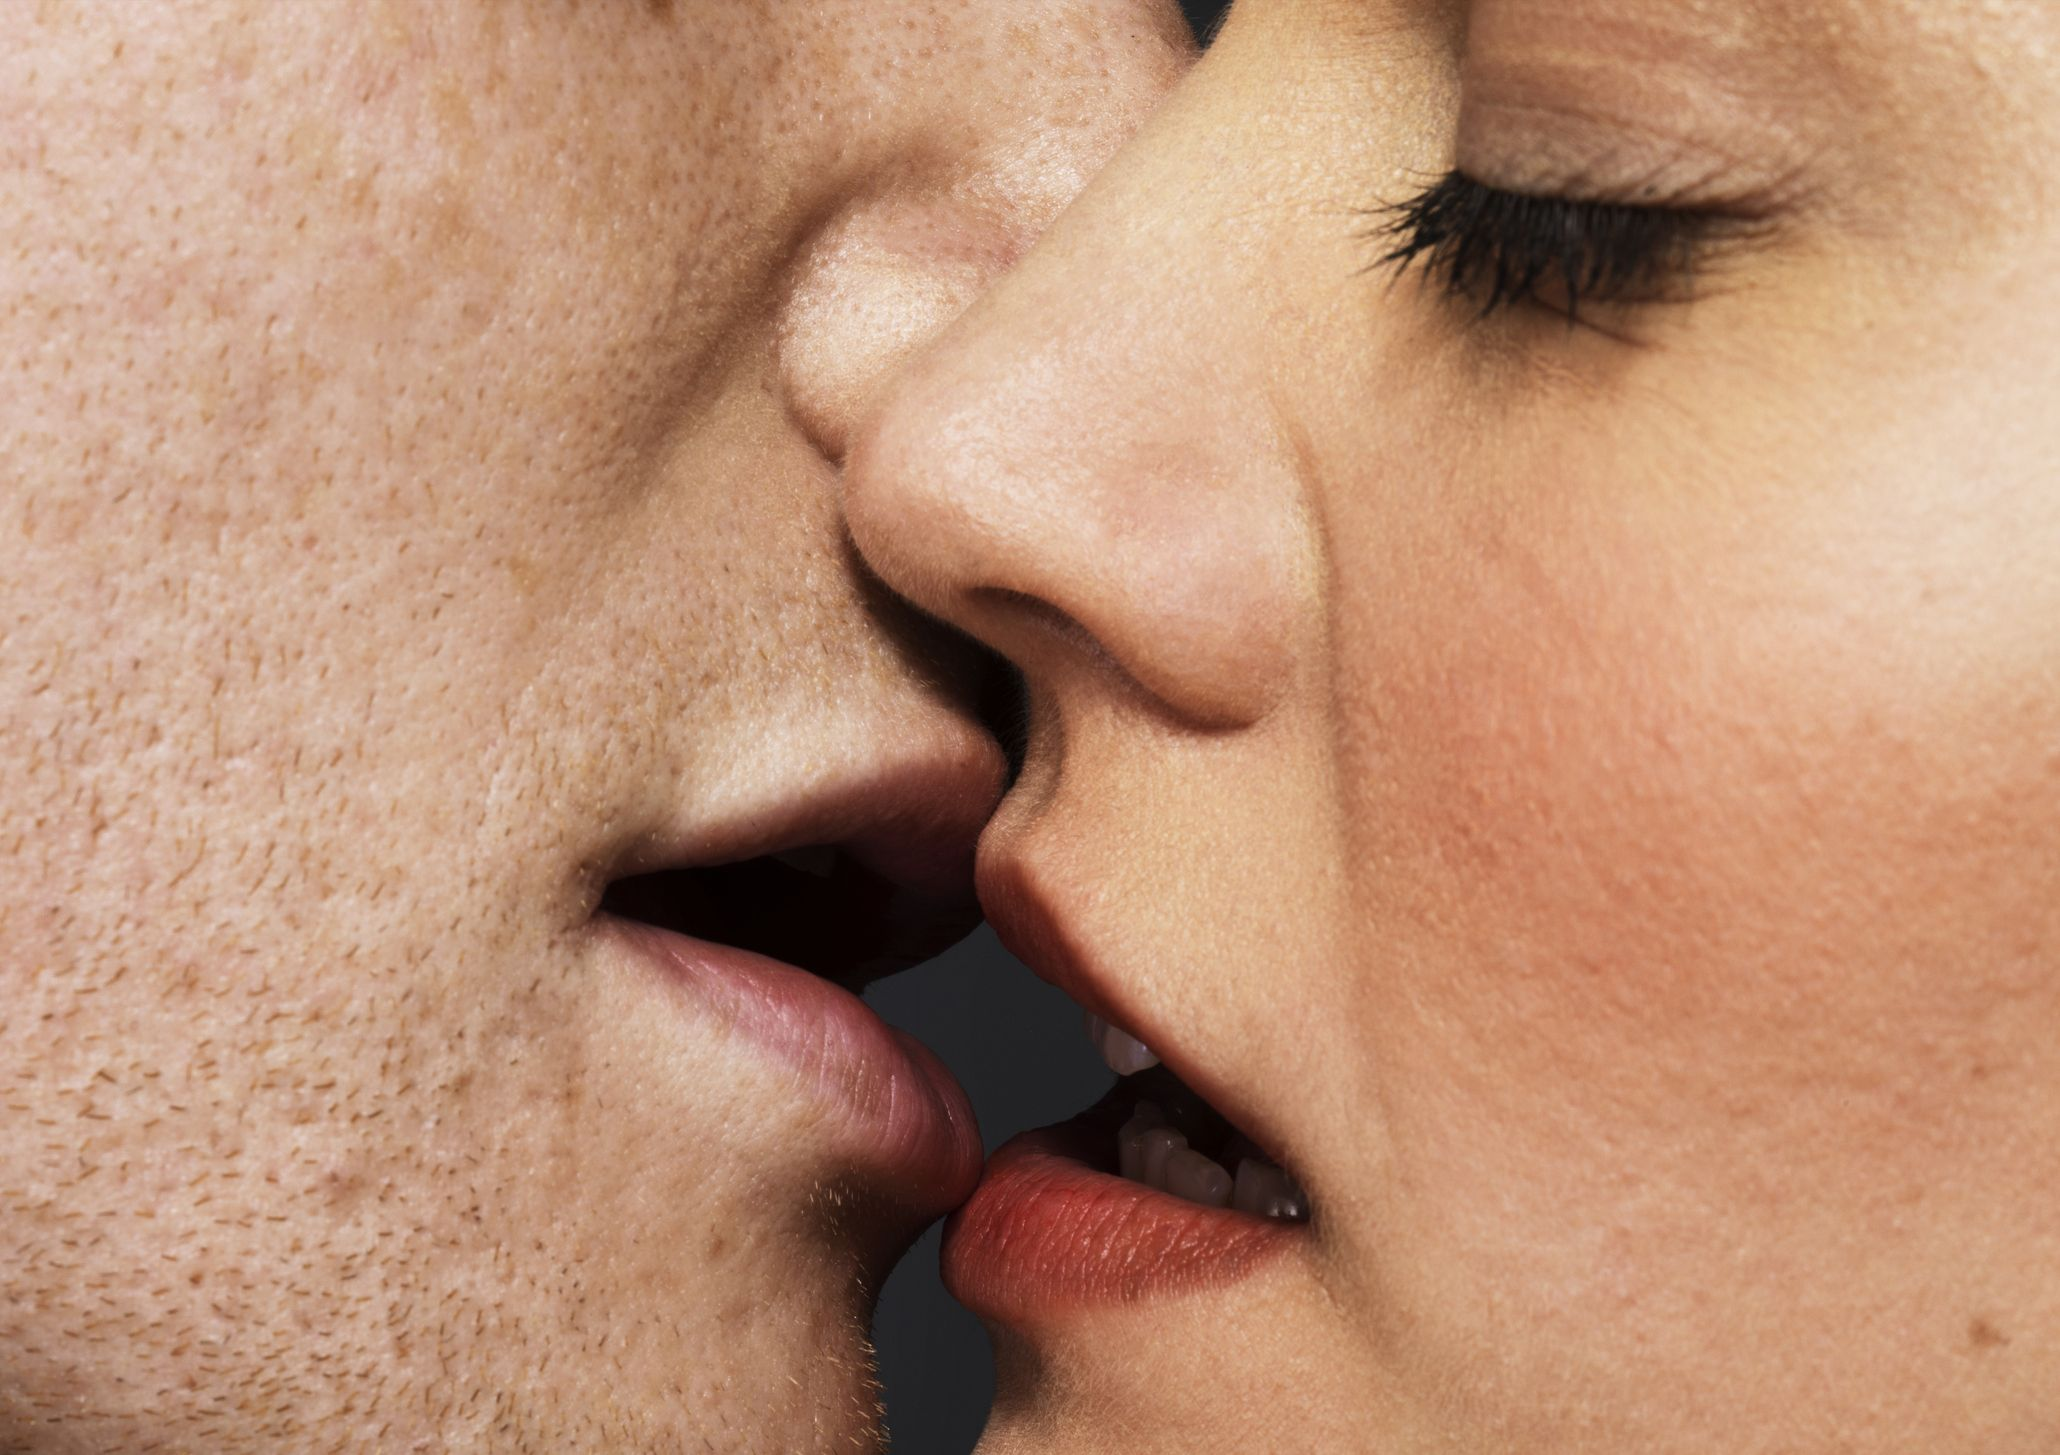 hpv mouth kissing